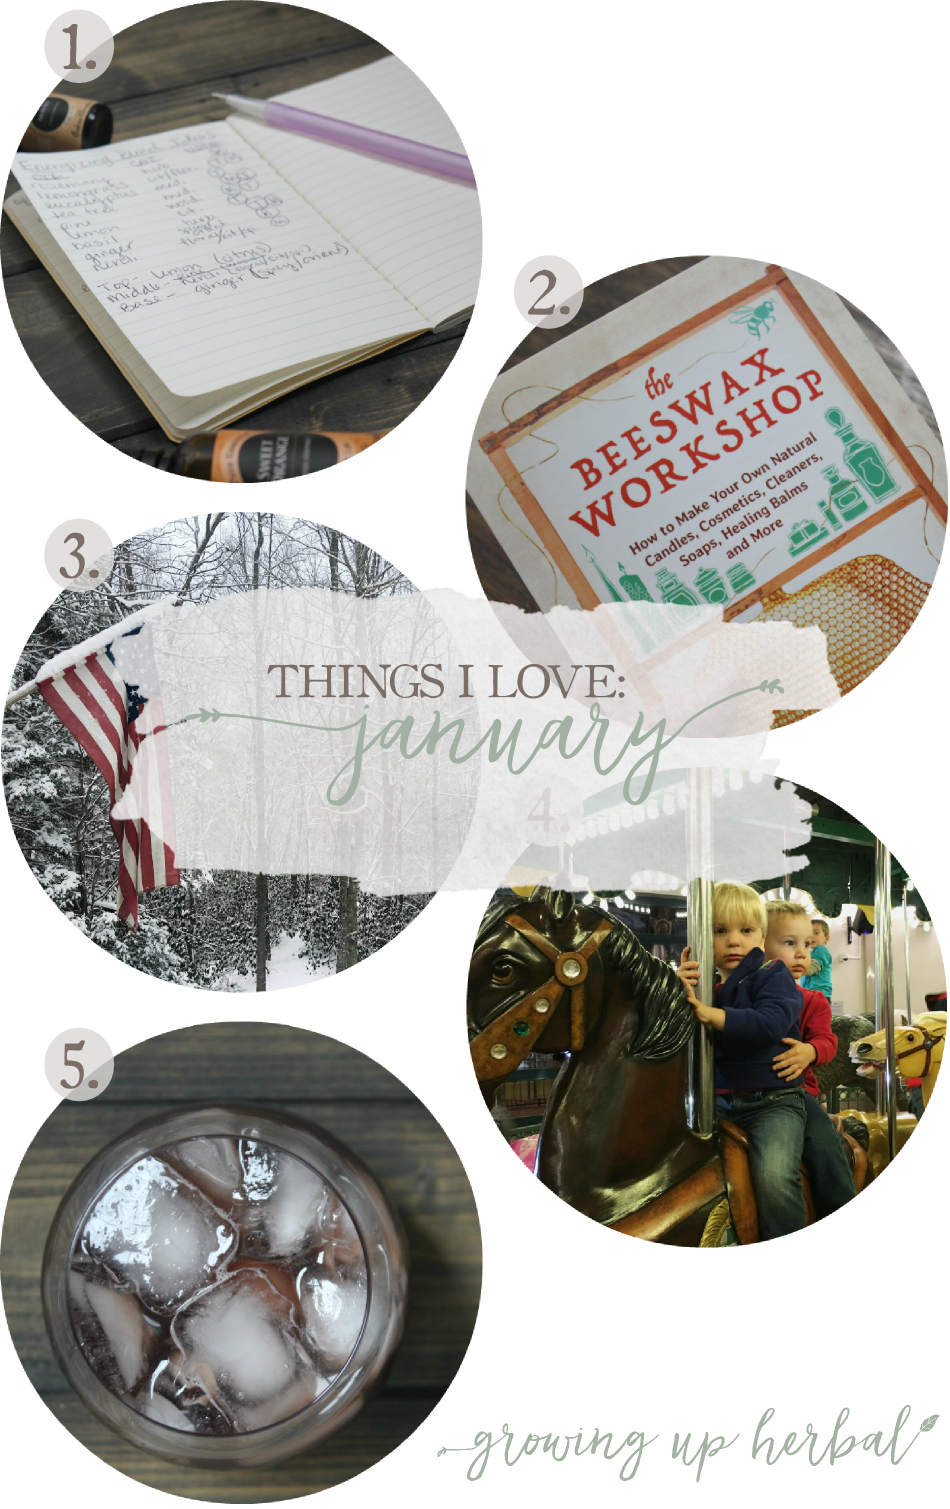 Things I Love: January 2017 | Growing Up Herbal | I'm sharing some more of my favorite things from January 2017... including essential oil blends, using leftover herbs from elderberry syrup, a blogger friends newest book, and more. Check it out!